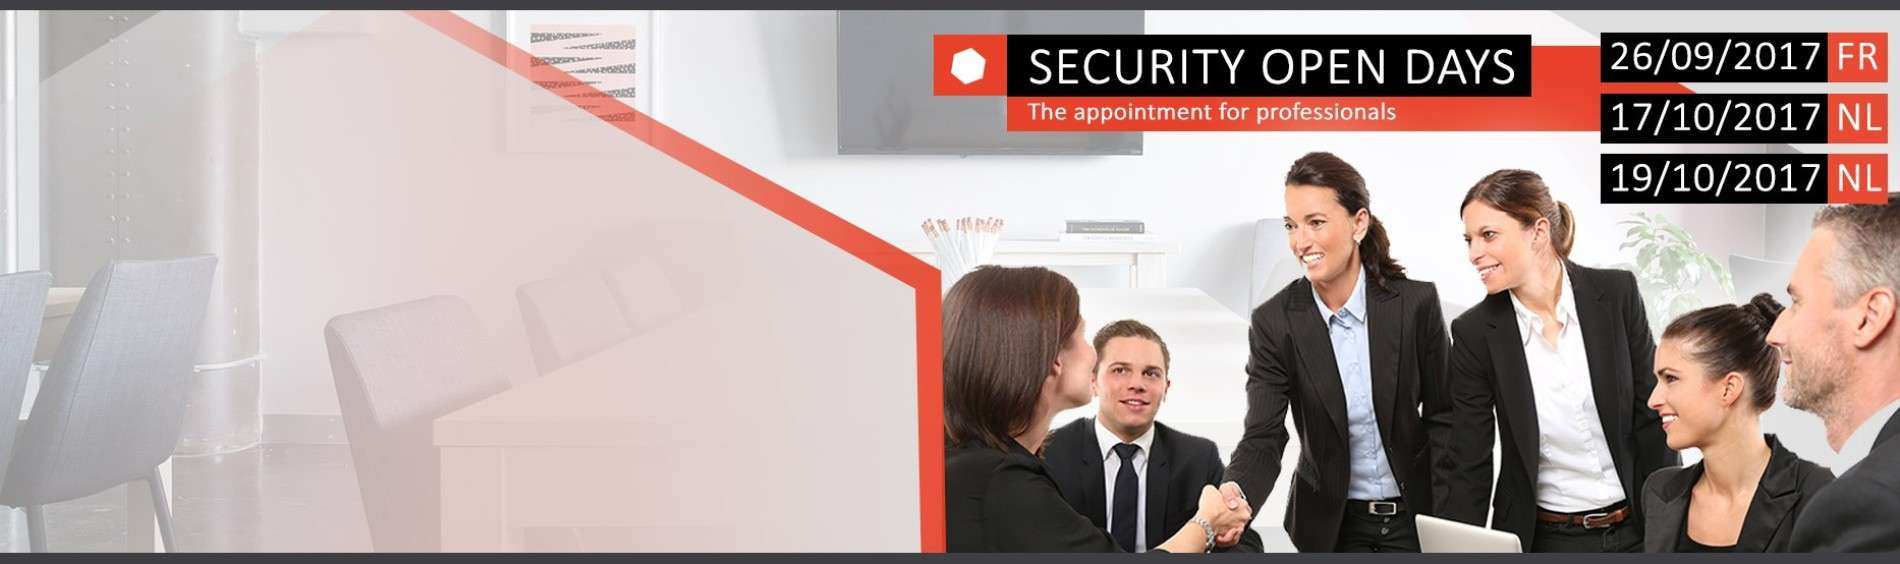 SECURITY OPEN DAYS